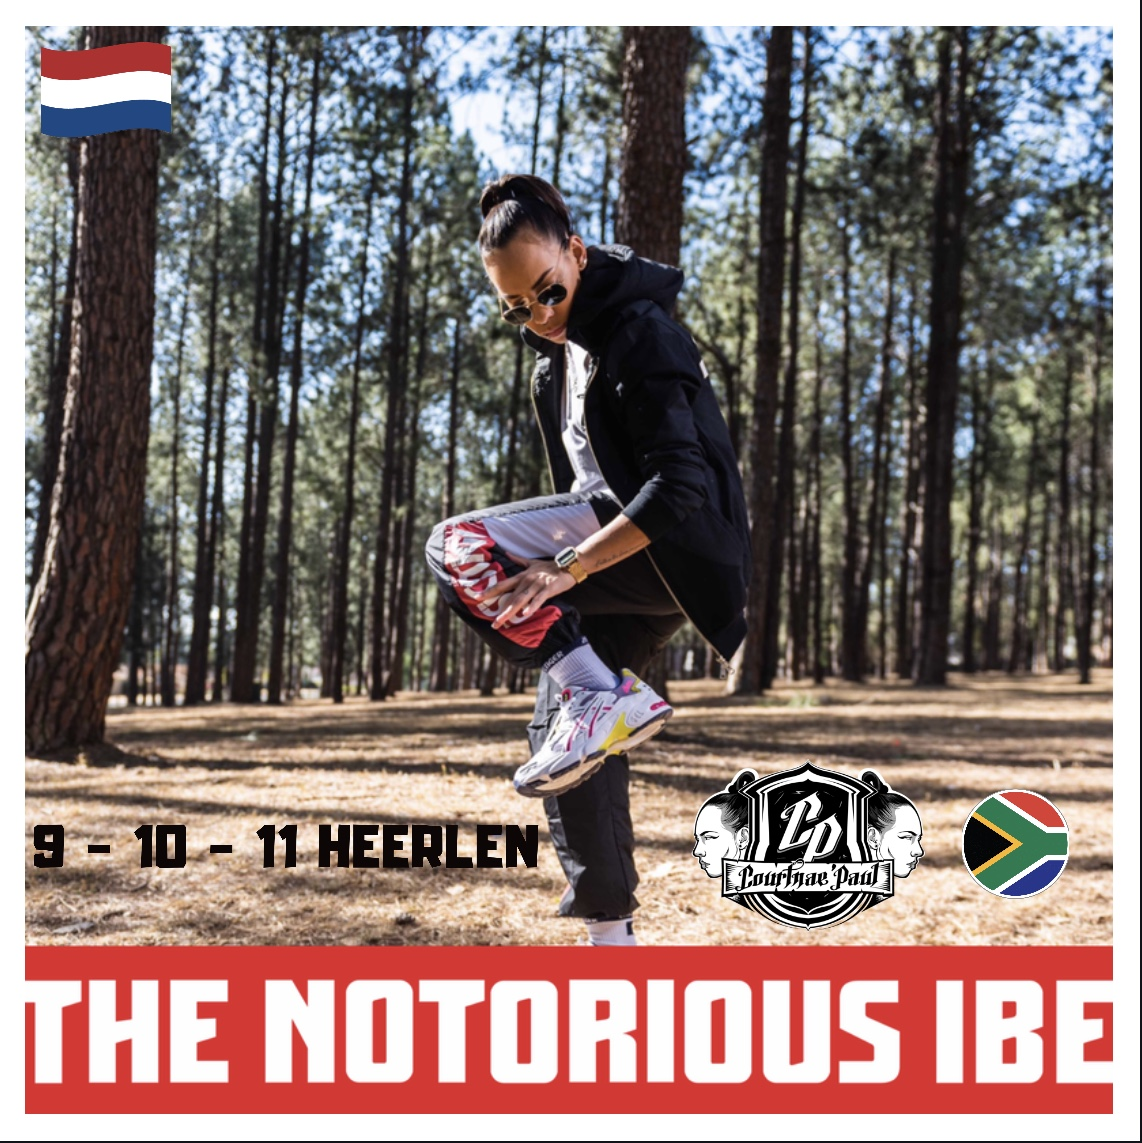 THE NOTORIOUS IBE, HOLLAND